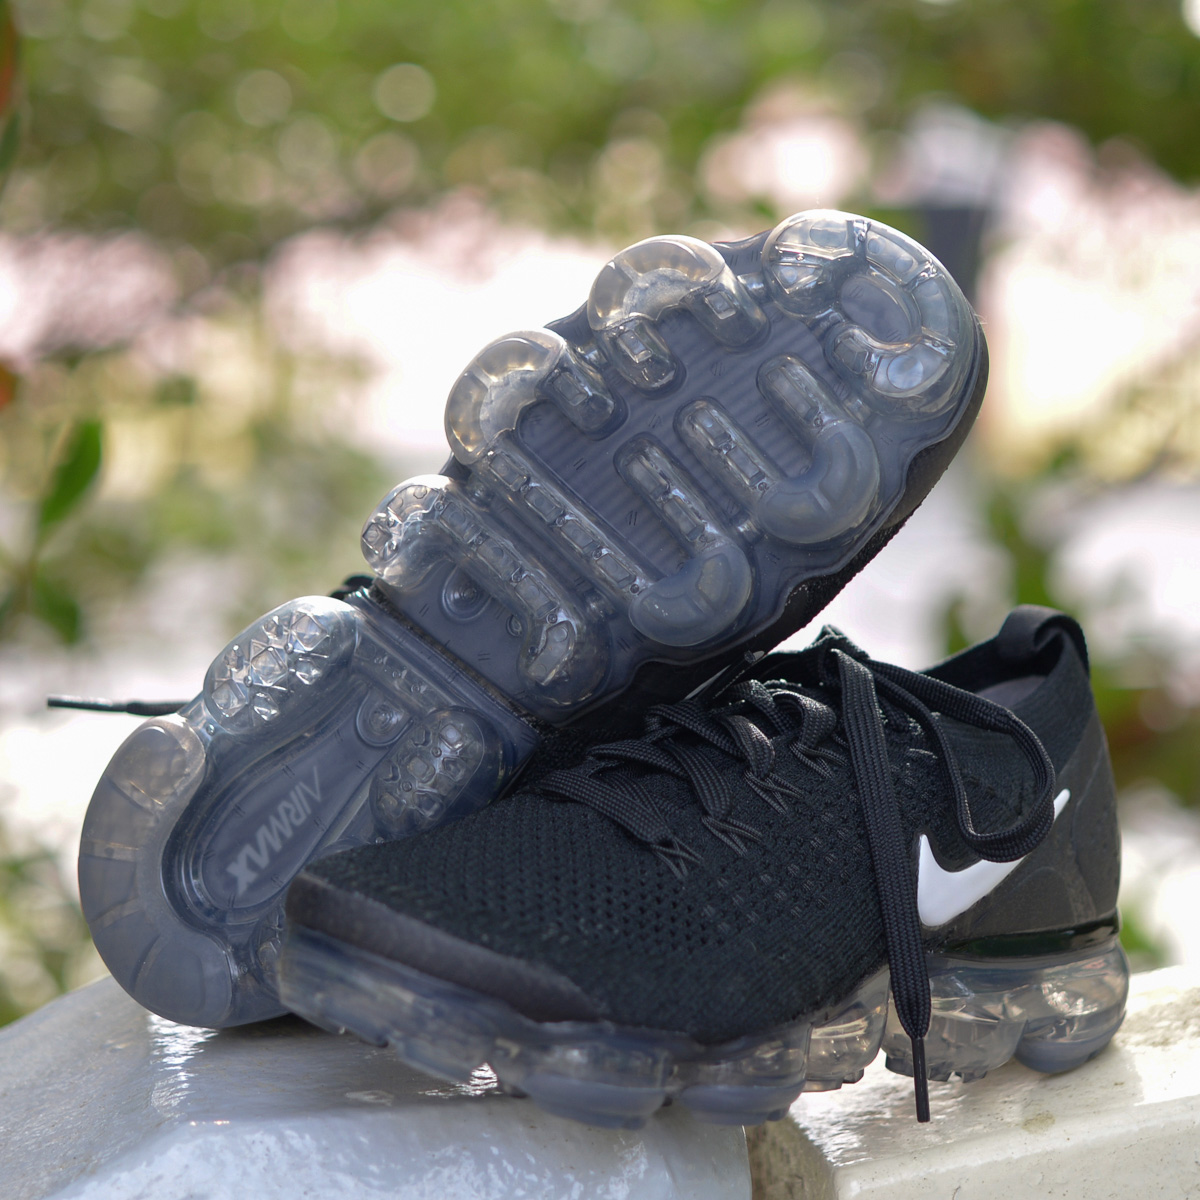 wholesale dealer ad90e 9be94 NIKE W AIR VAPORMAX FLYKNIT 2 (Nike women air vapor max fried food knit 2)  BLACK WHITE-DARK GREY-METALLIC SILVER 18SP-I